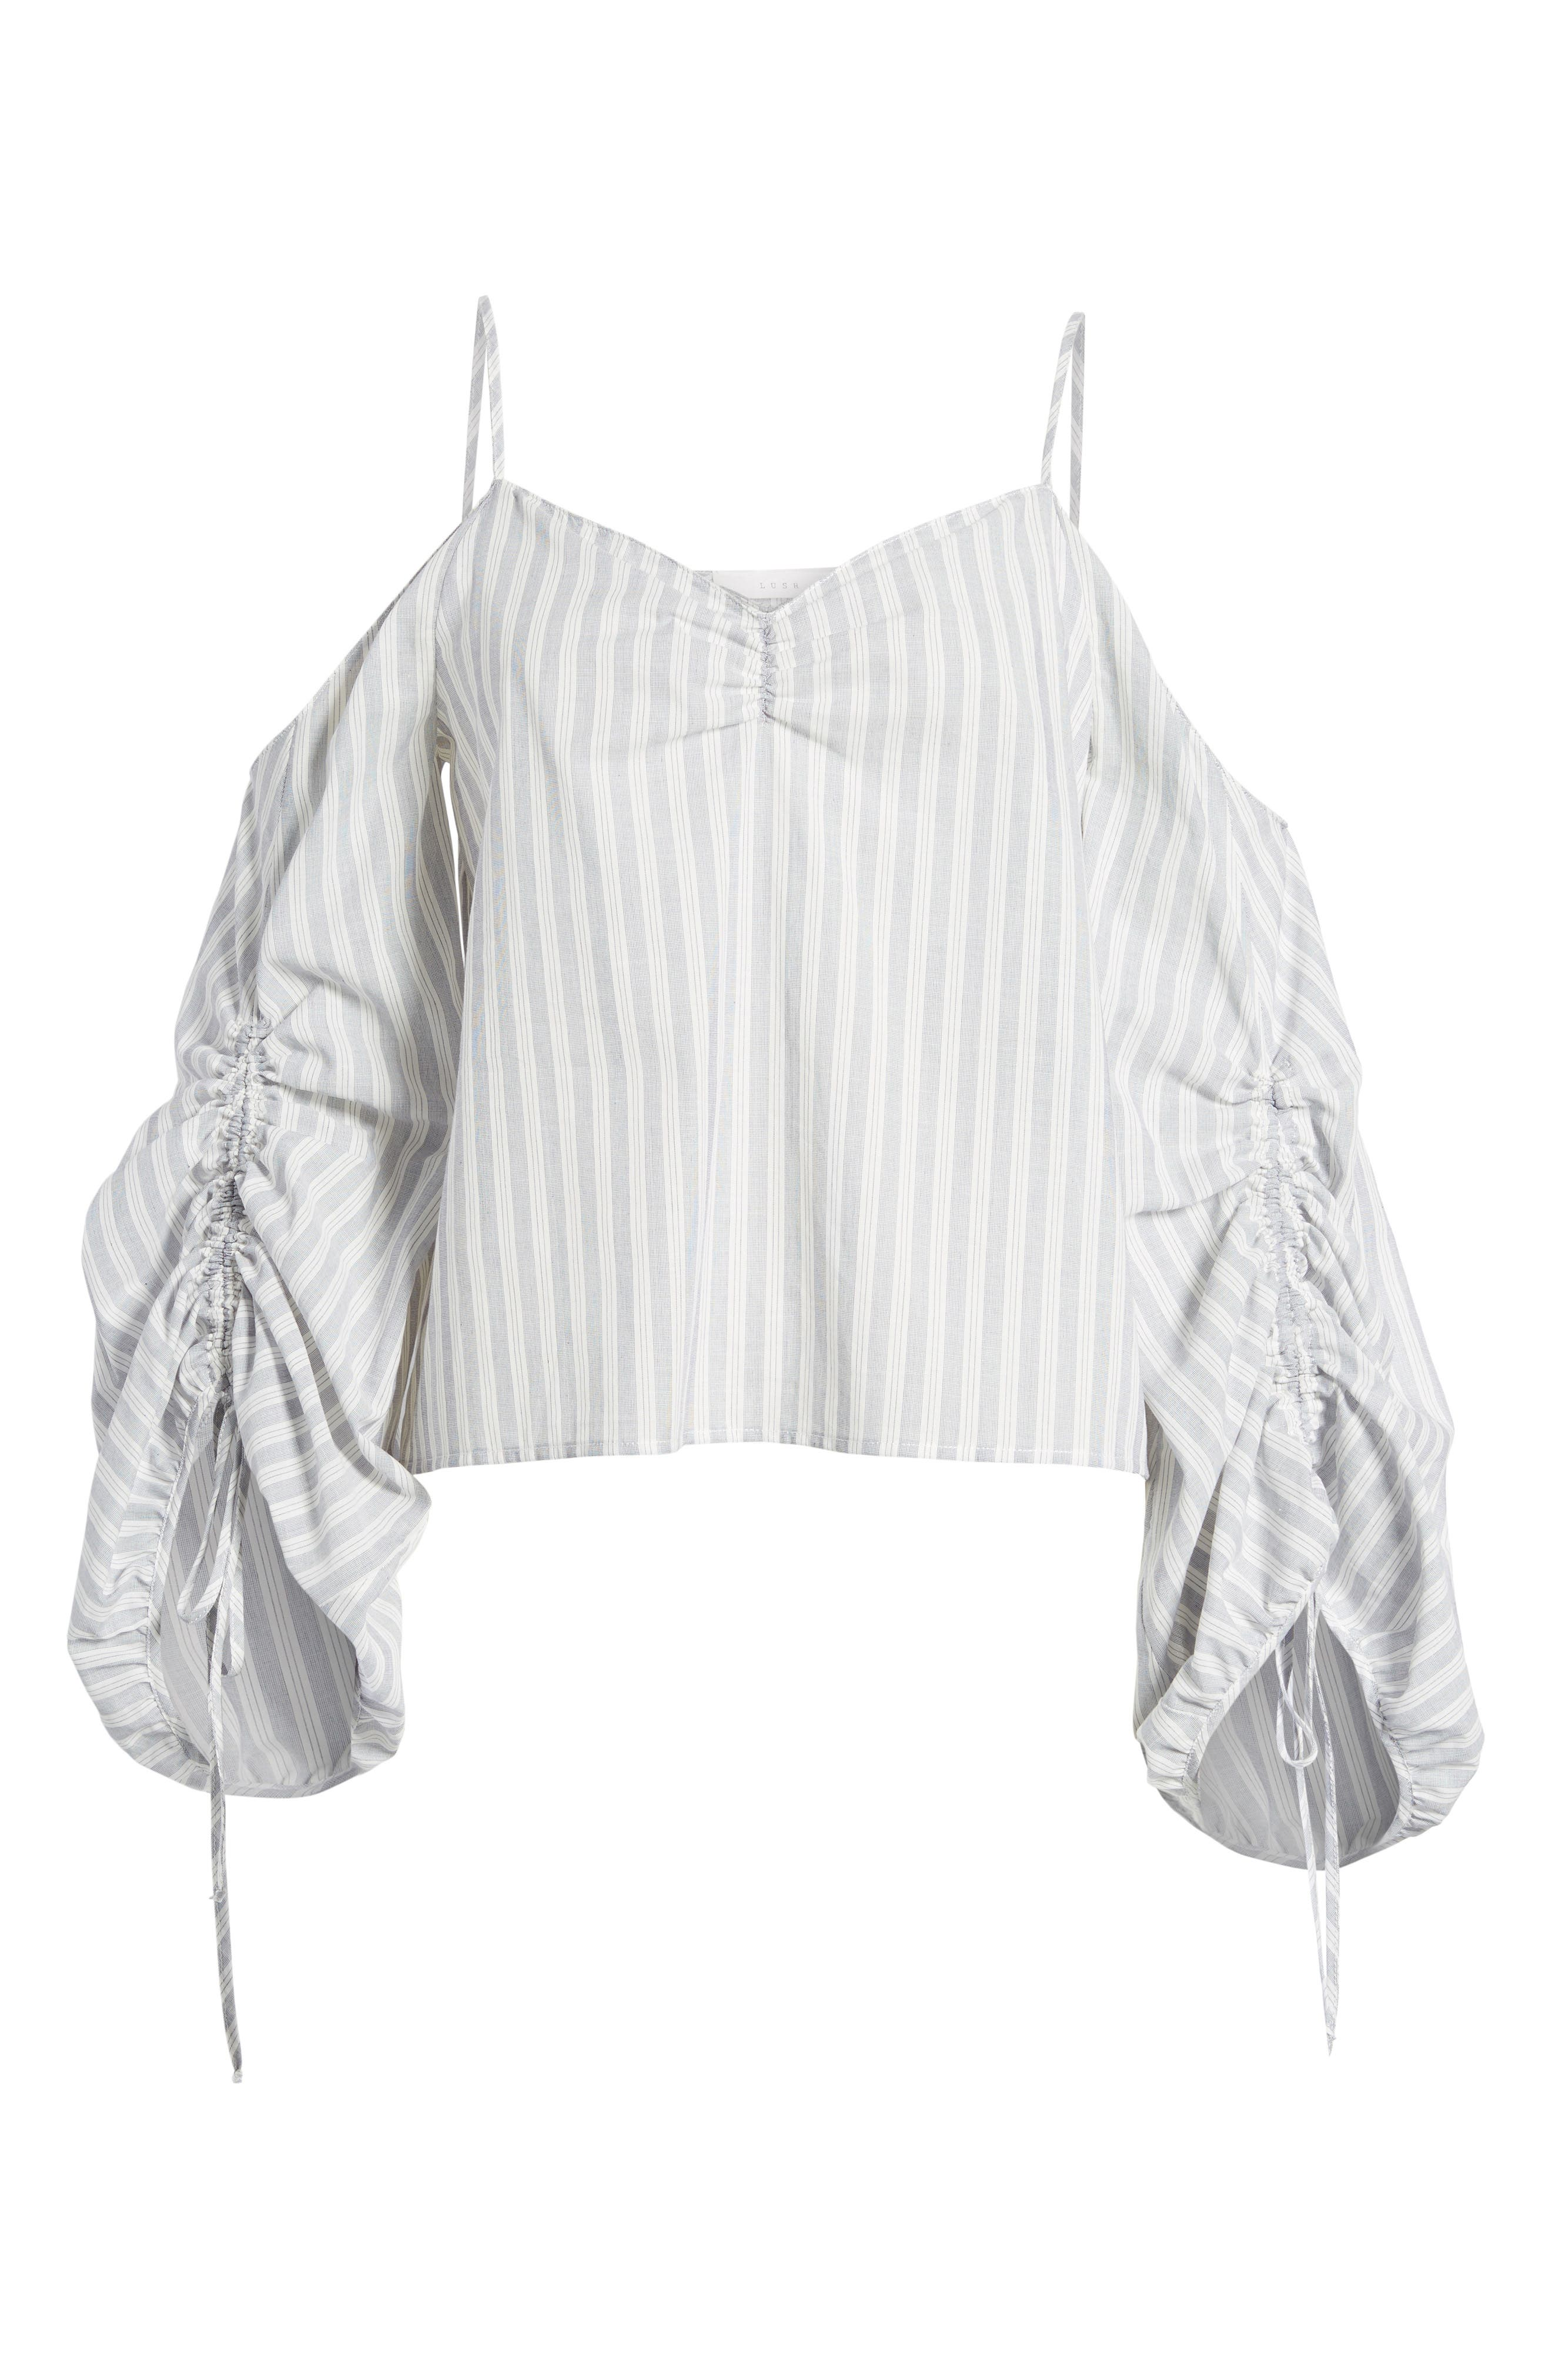 Cinched Balloon Sleeve Top,                             Alternate thumbnail 6, color,                             Grey/ White Stripe